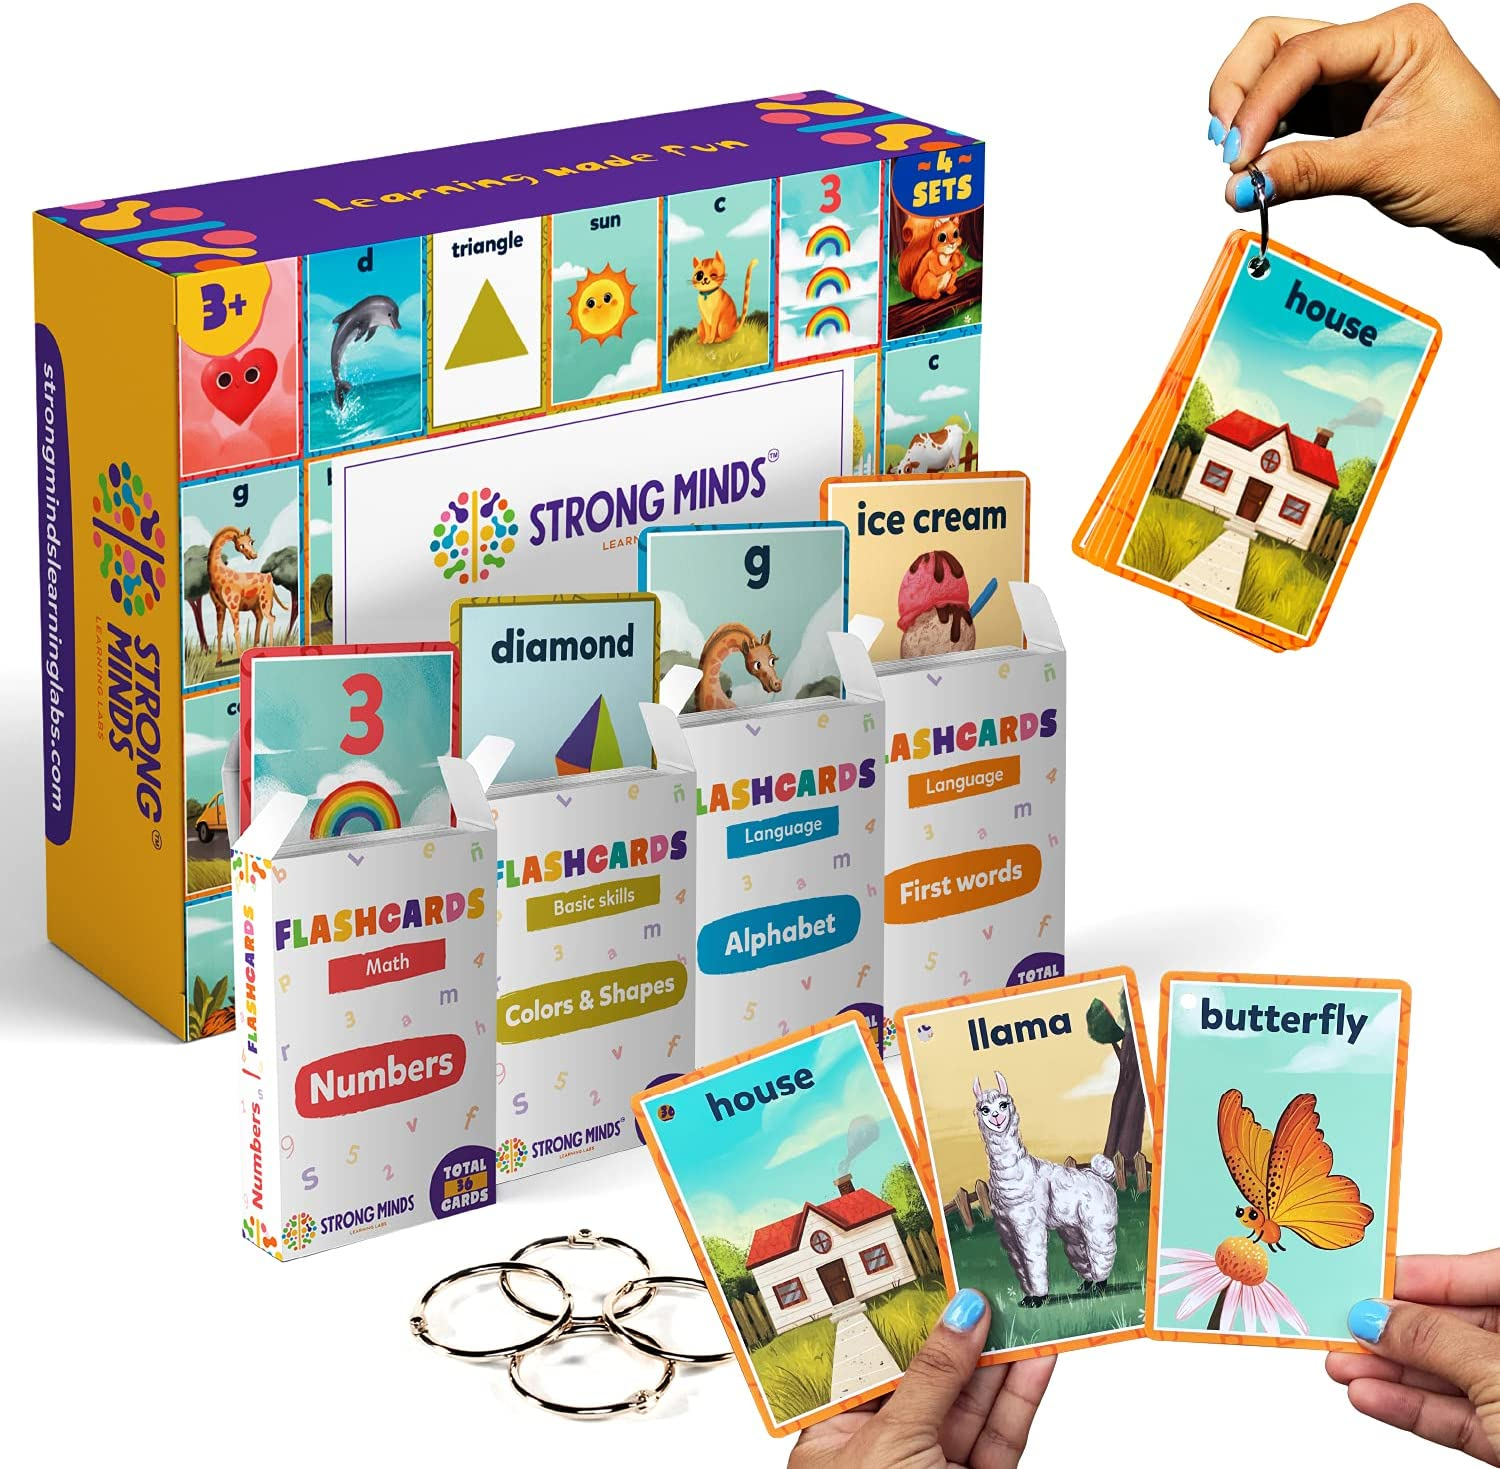 Strong Minds Educational Flash Cards - We OFFer at cheap prices First N Words Austin Mall 4 Set of